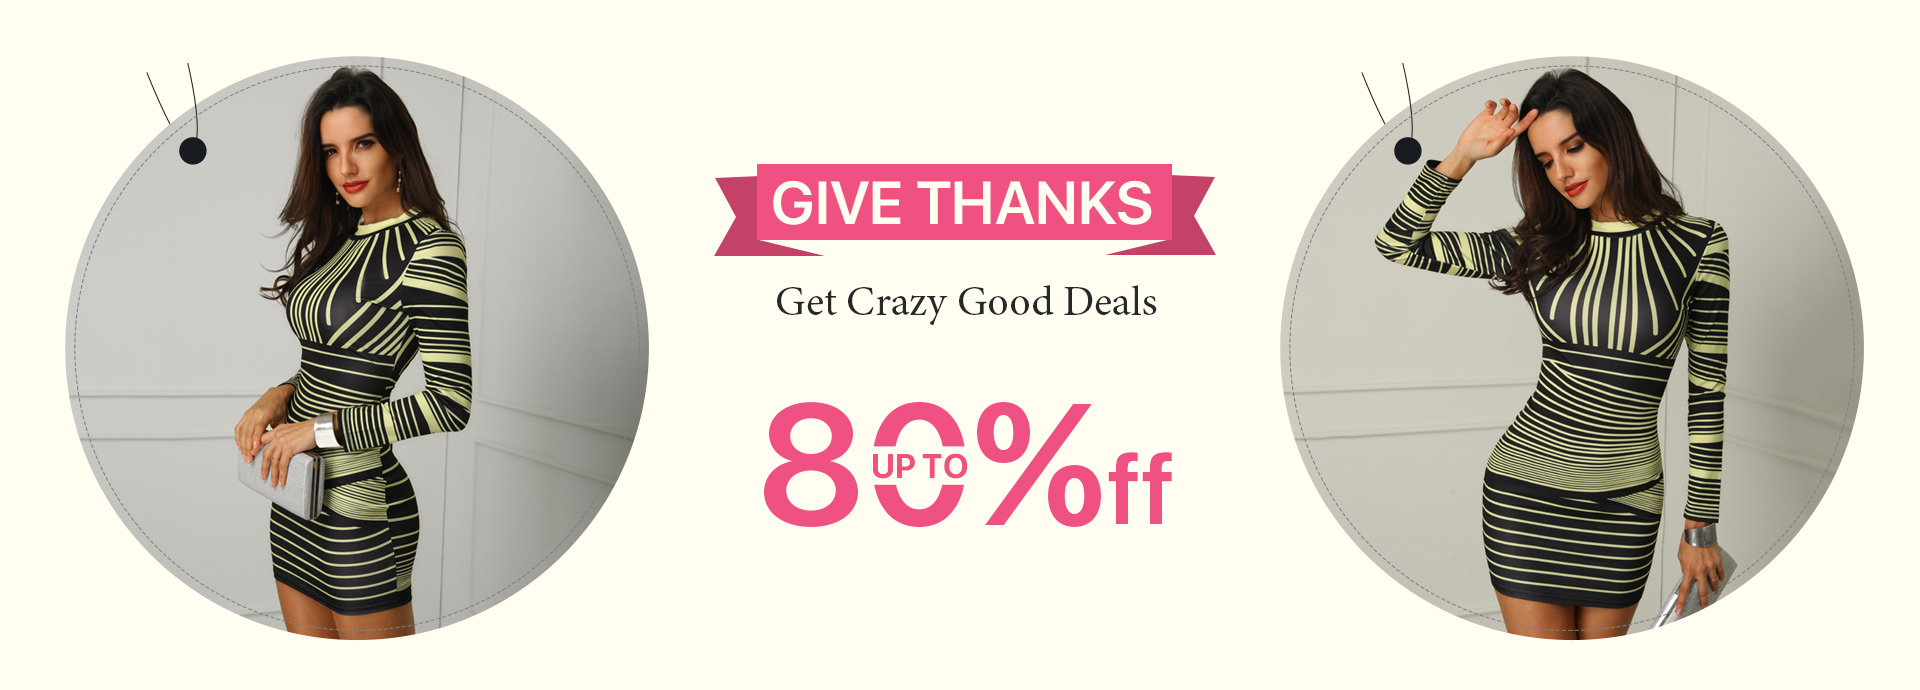 Give Thanks  Get Crazy Good Deals